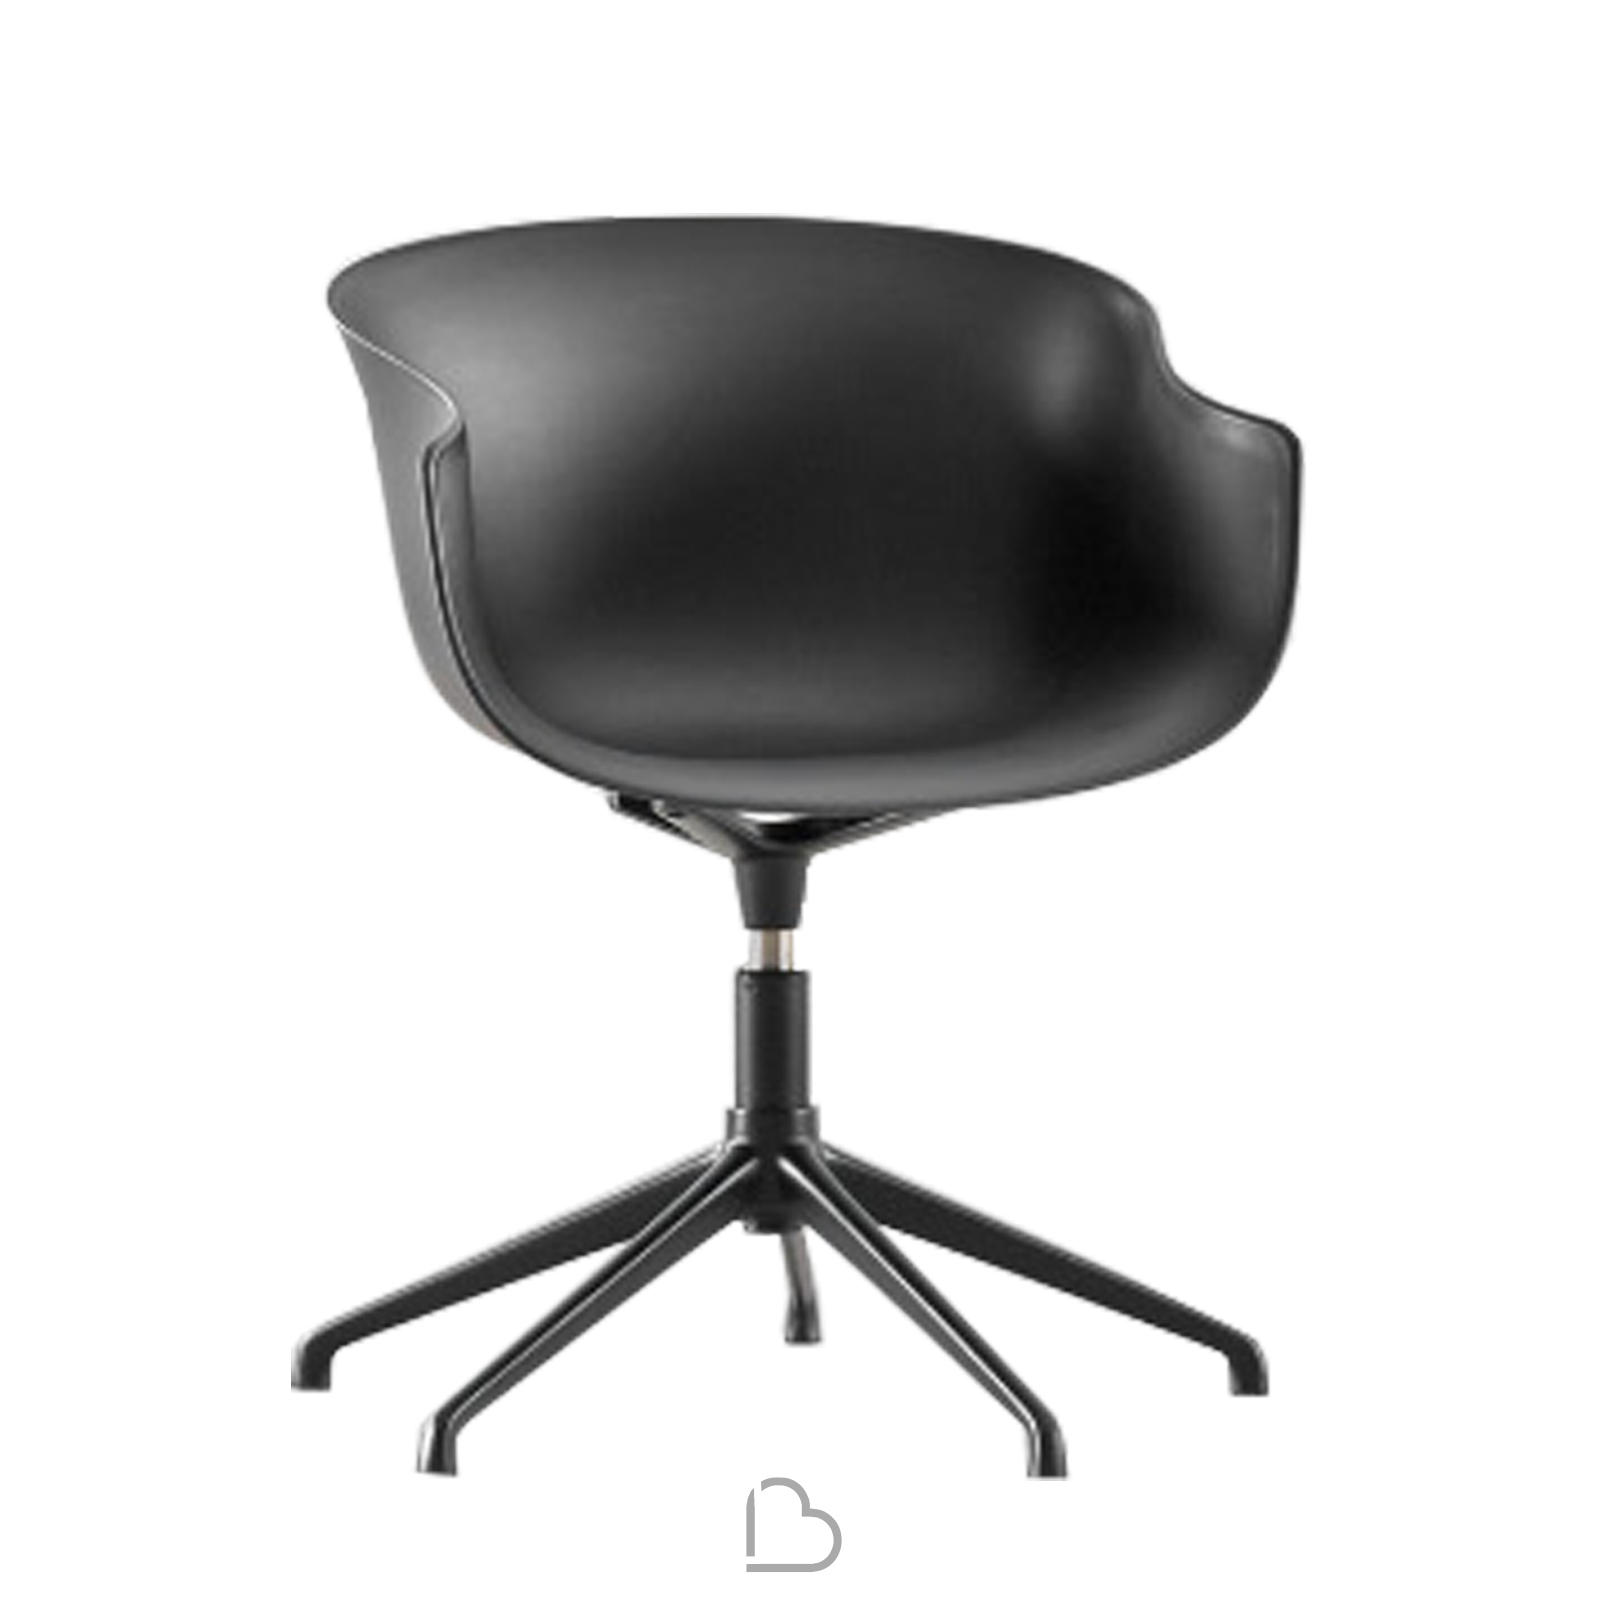 Sedia Girevole English Swivel Chair Ondarreta Bai Barthome